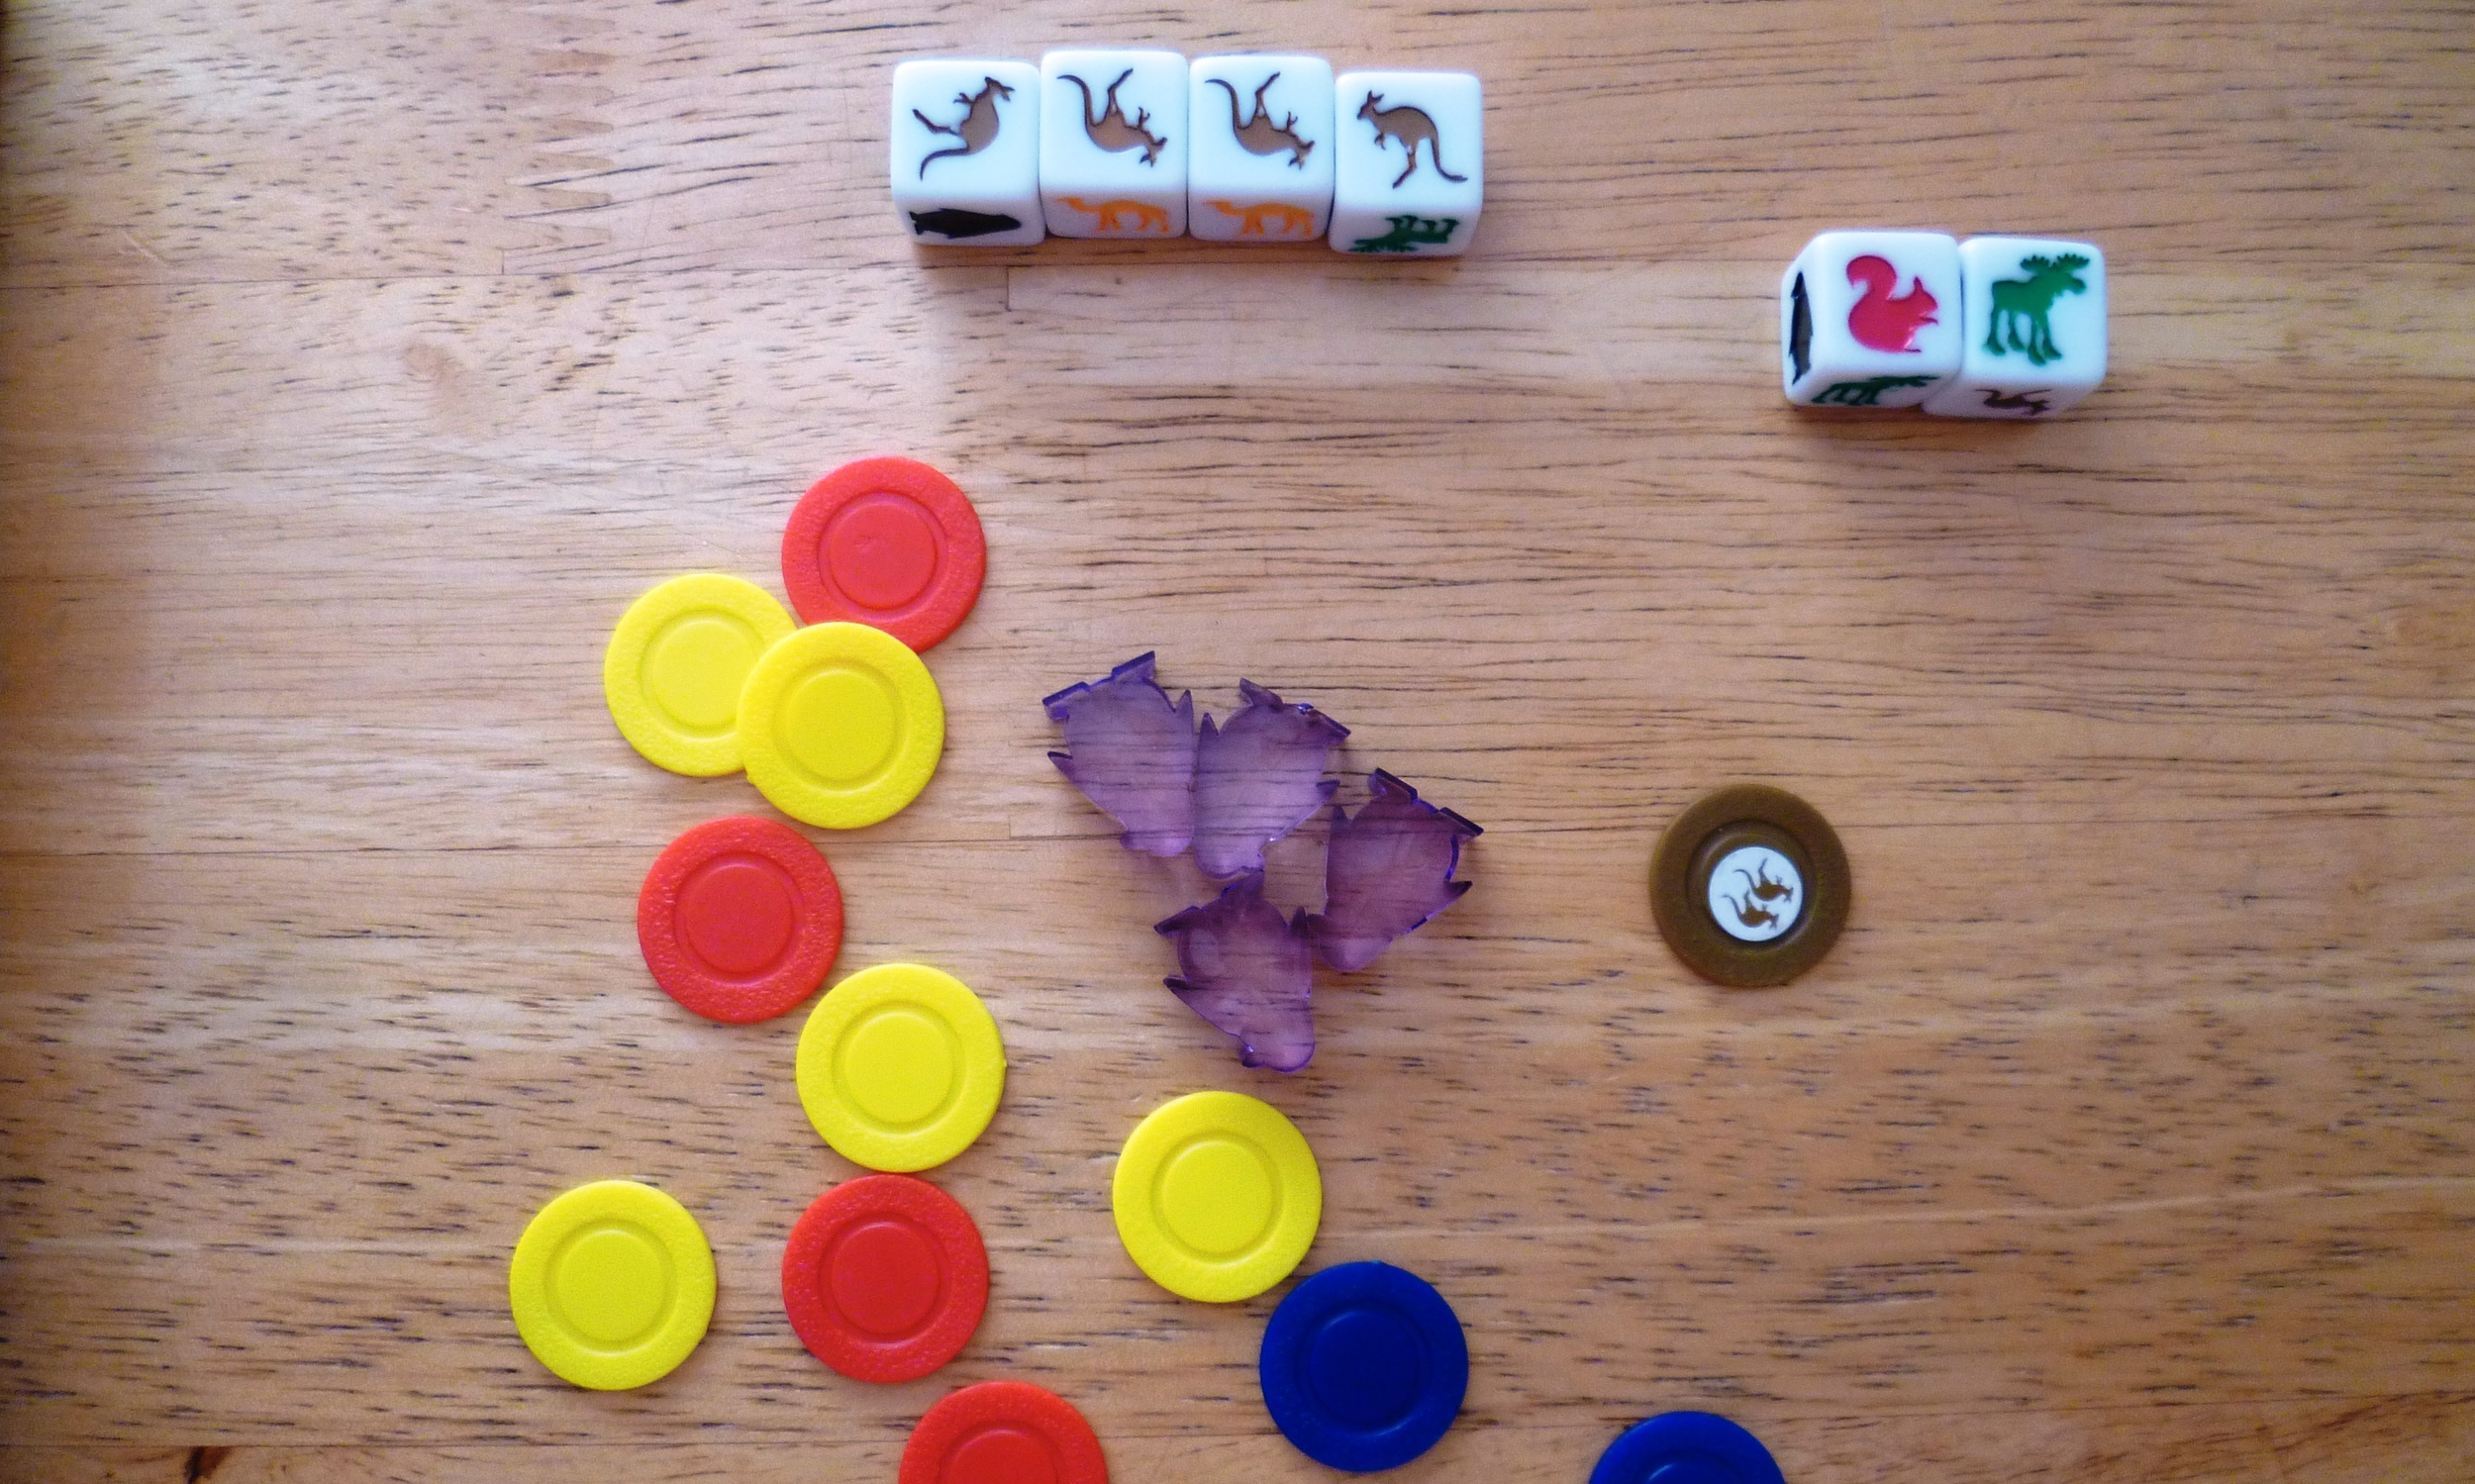 A score of 26 points (16 for Kangaroos, 9 for the squirrel moose pair, and a penny from the next player).